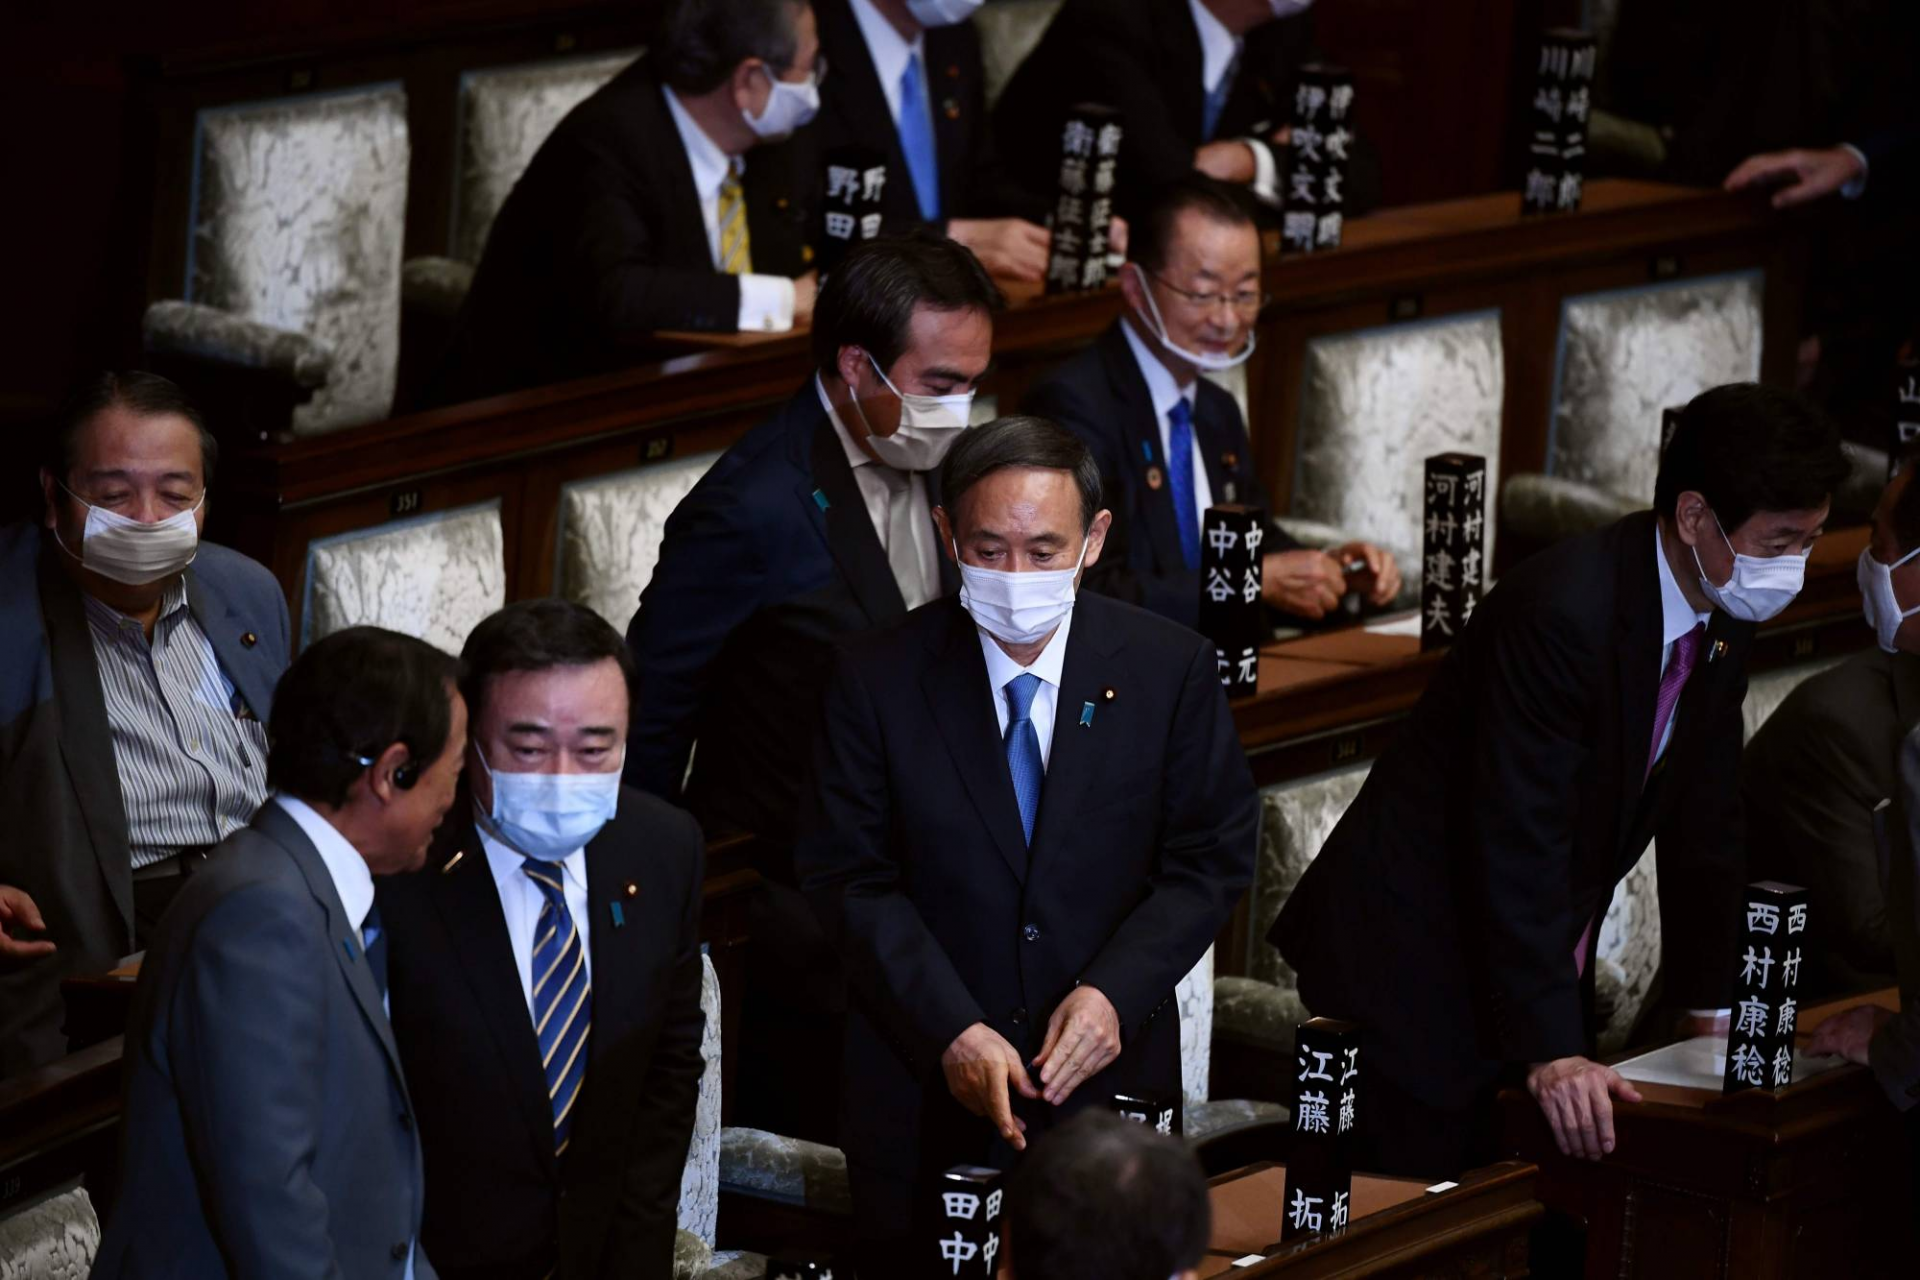 Yoshihide Suga officially named as Japan's new Prime Minister, replacing Shinzo Abe